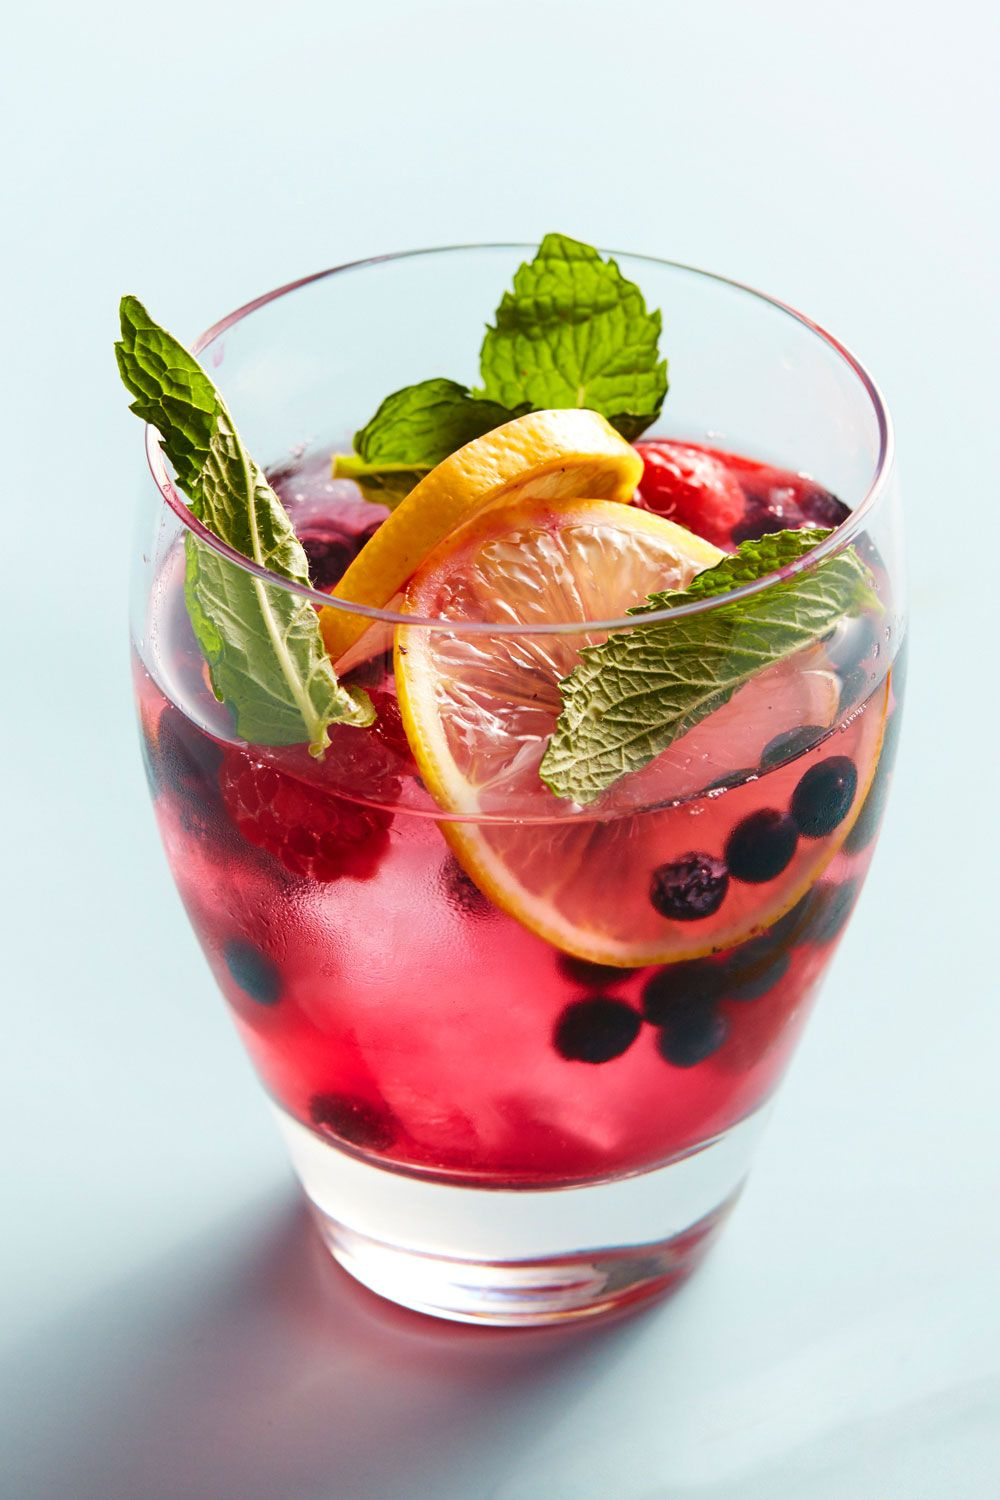 <p><strong>Ingredients:</strong></p><p>2 parts Absolut Vodka</p><p>1 parts Lemonade</p><p>1 part watermelon juice</p><p>Frozen blueberries and strawberries, lemon wheels, mint sprigs</p><p><strong>Directions:</strong></p><p>Combine all ingredients over large chunks of ice. Decorate with the above garnishes.</p>